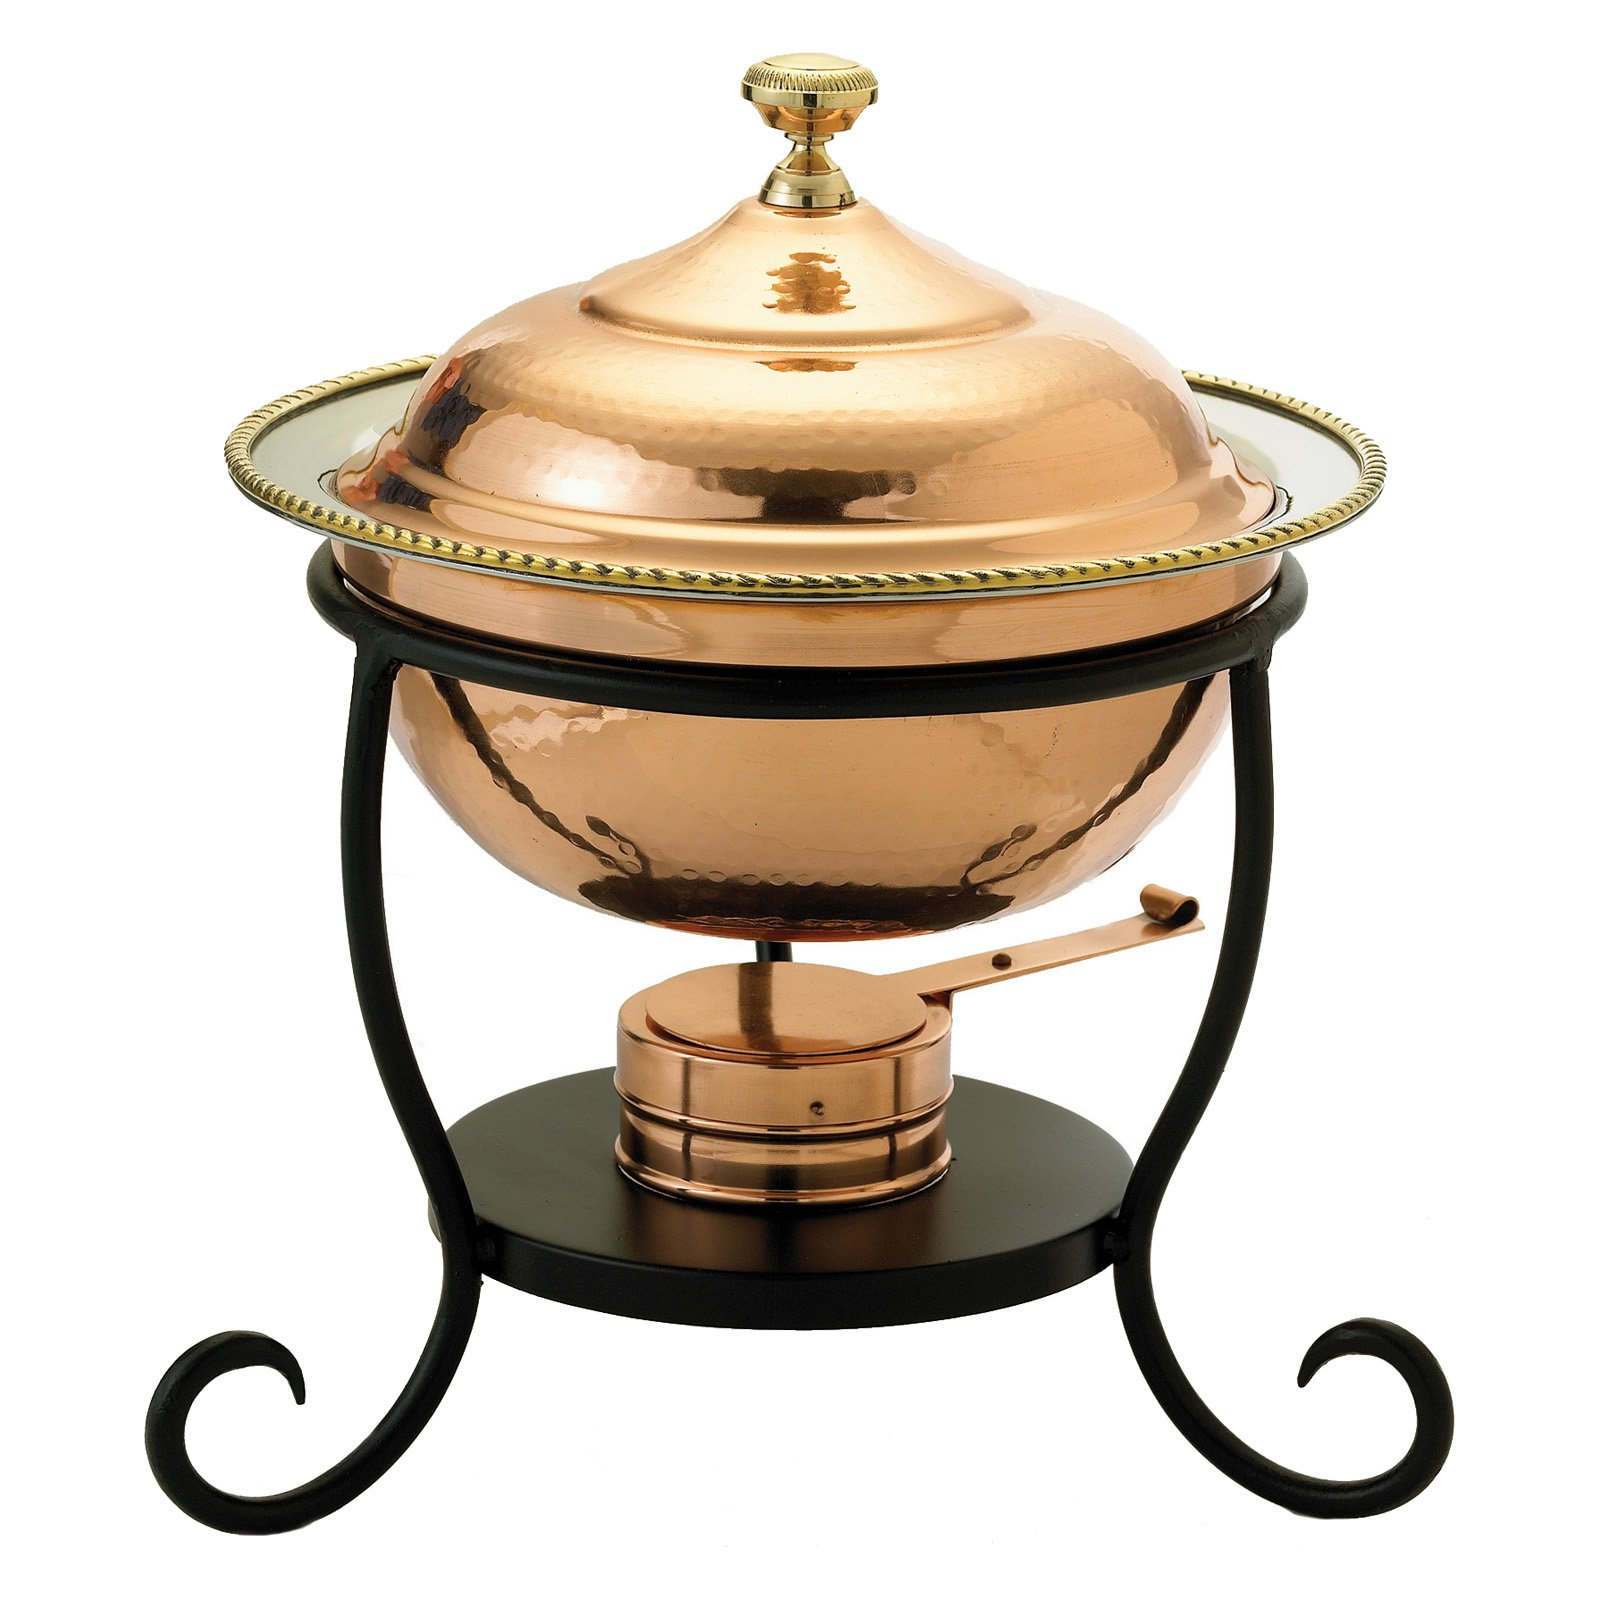 "10"" x 10½"" x 12"" Round Copper over Stainless Steel Chafing Dish, 1¾ Qt."